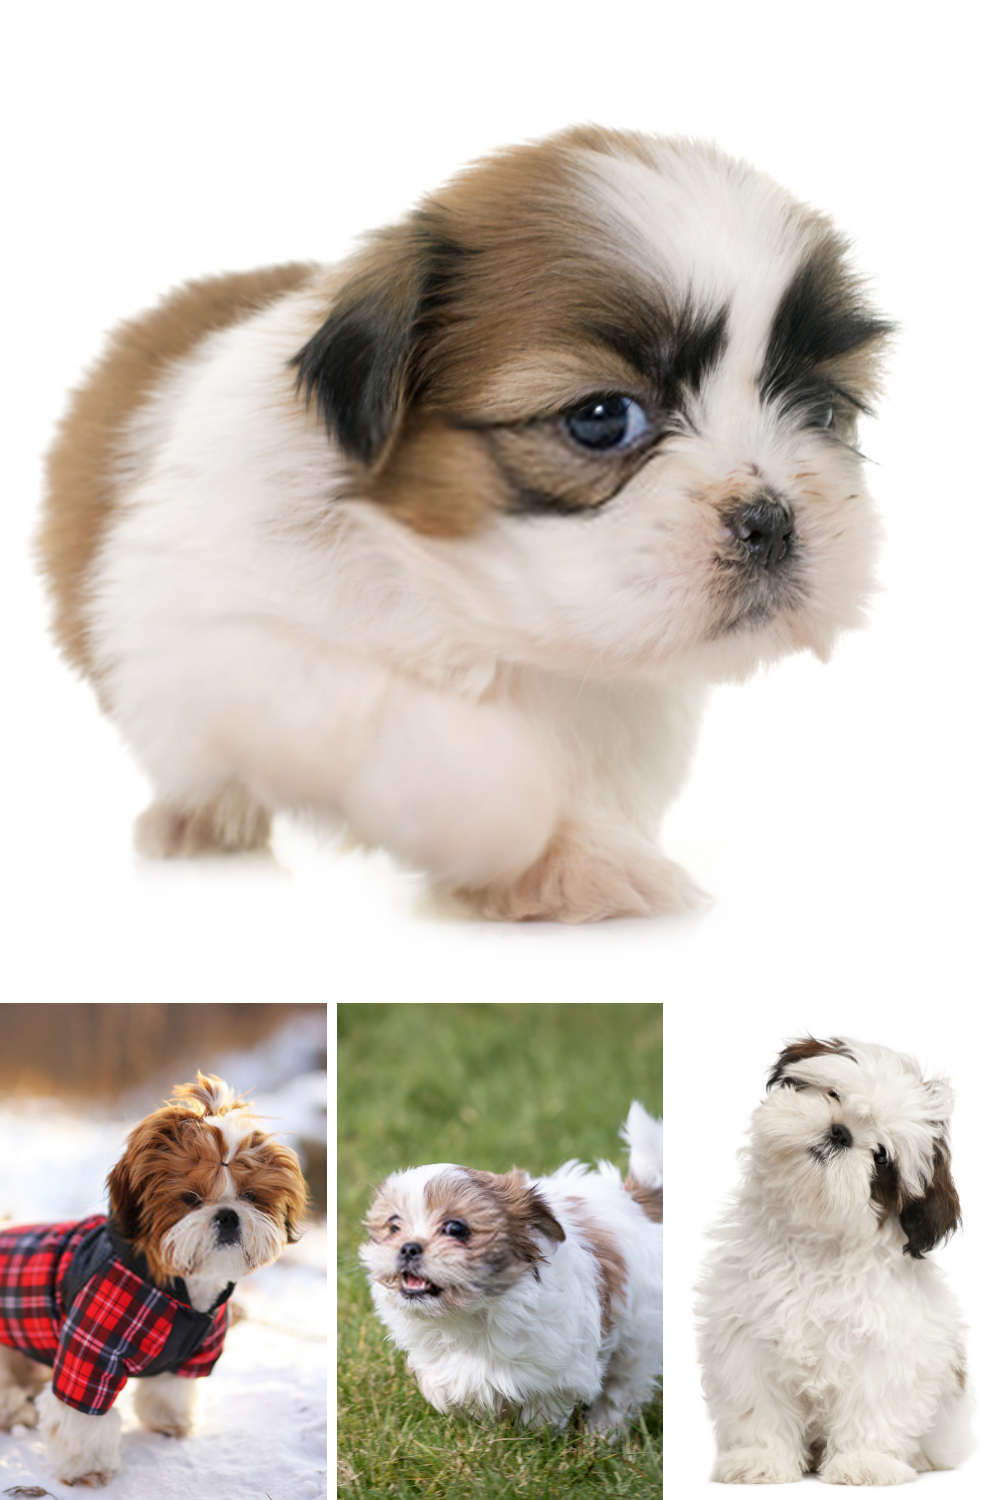 Shih Tzu Puppy Shih Tzu Dog In 2020 Shih Tzu Dog Puppy Dog Pictures Cute Dogs And Puppies